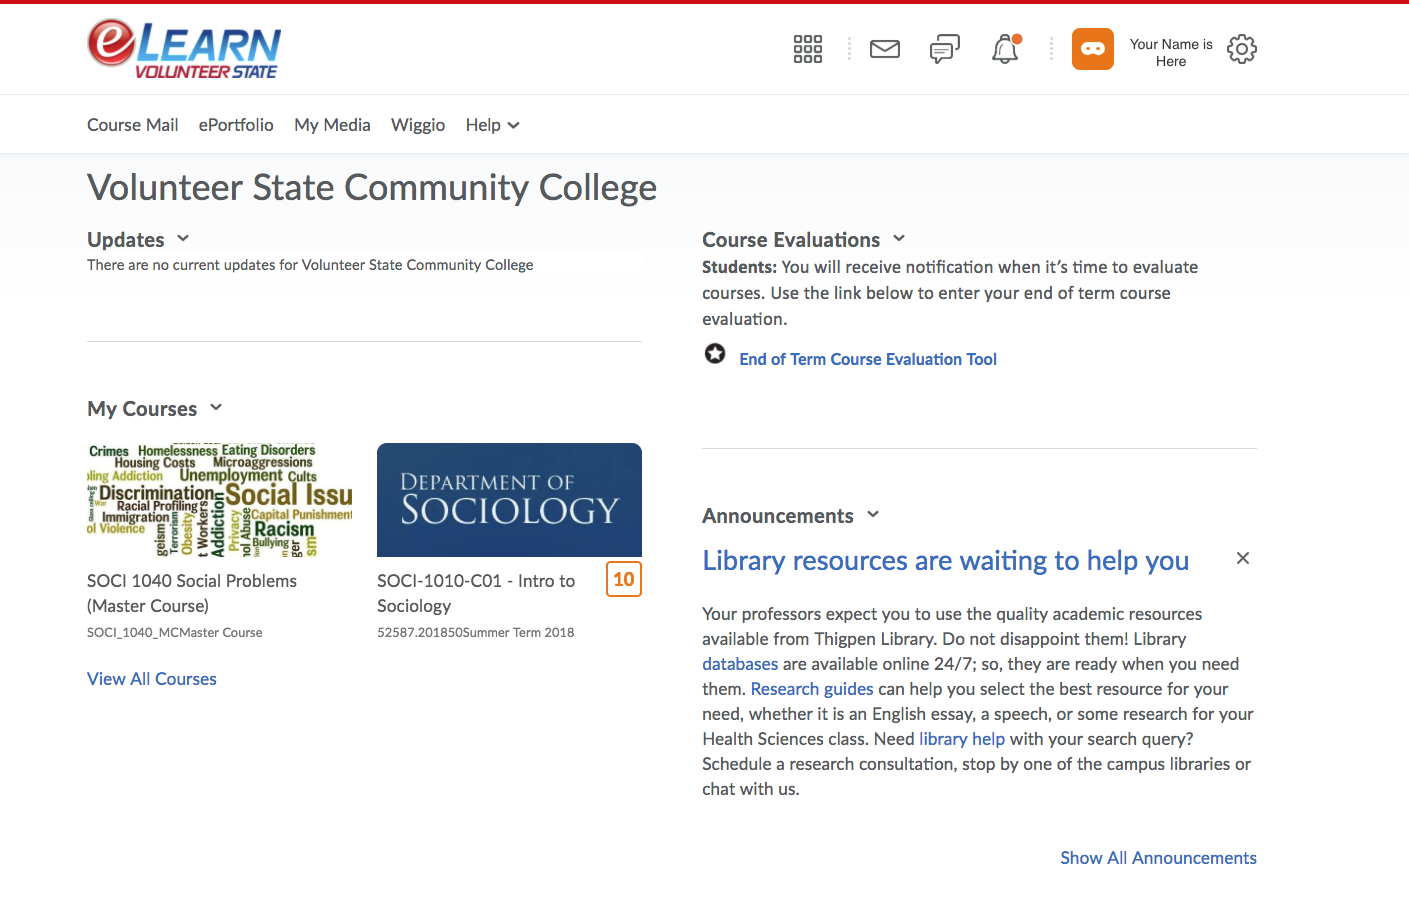 example screenshot of a faculty home page in eLearn